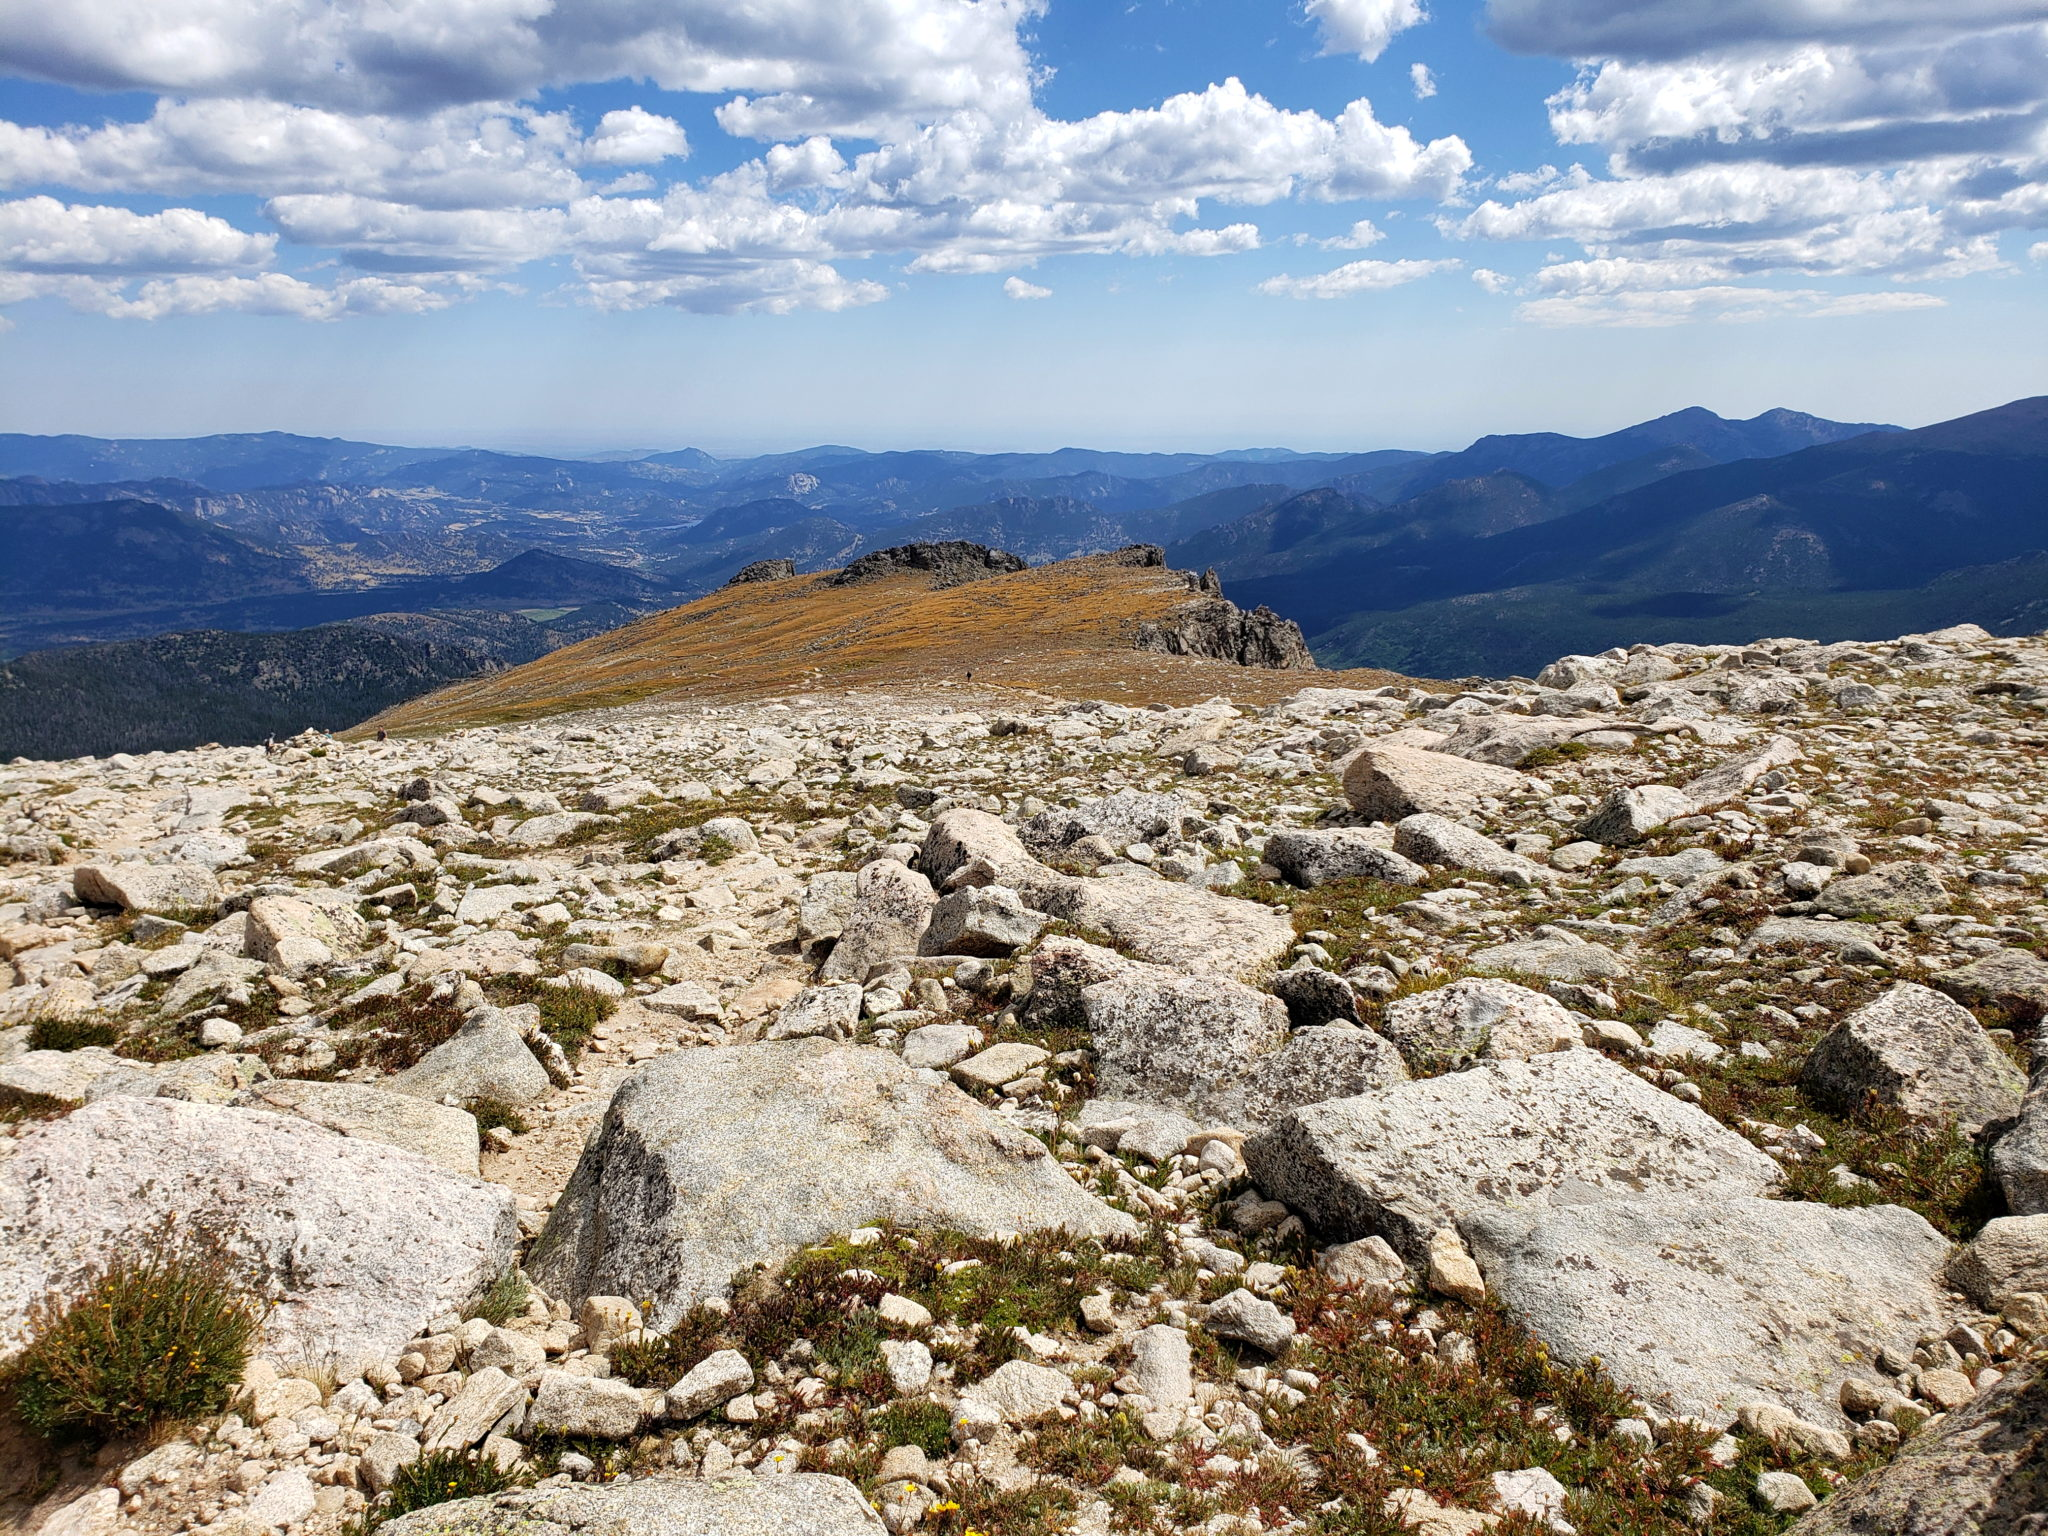 Looking east down the Flattop Mountain Trail